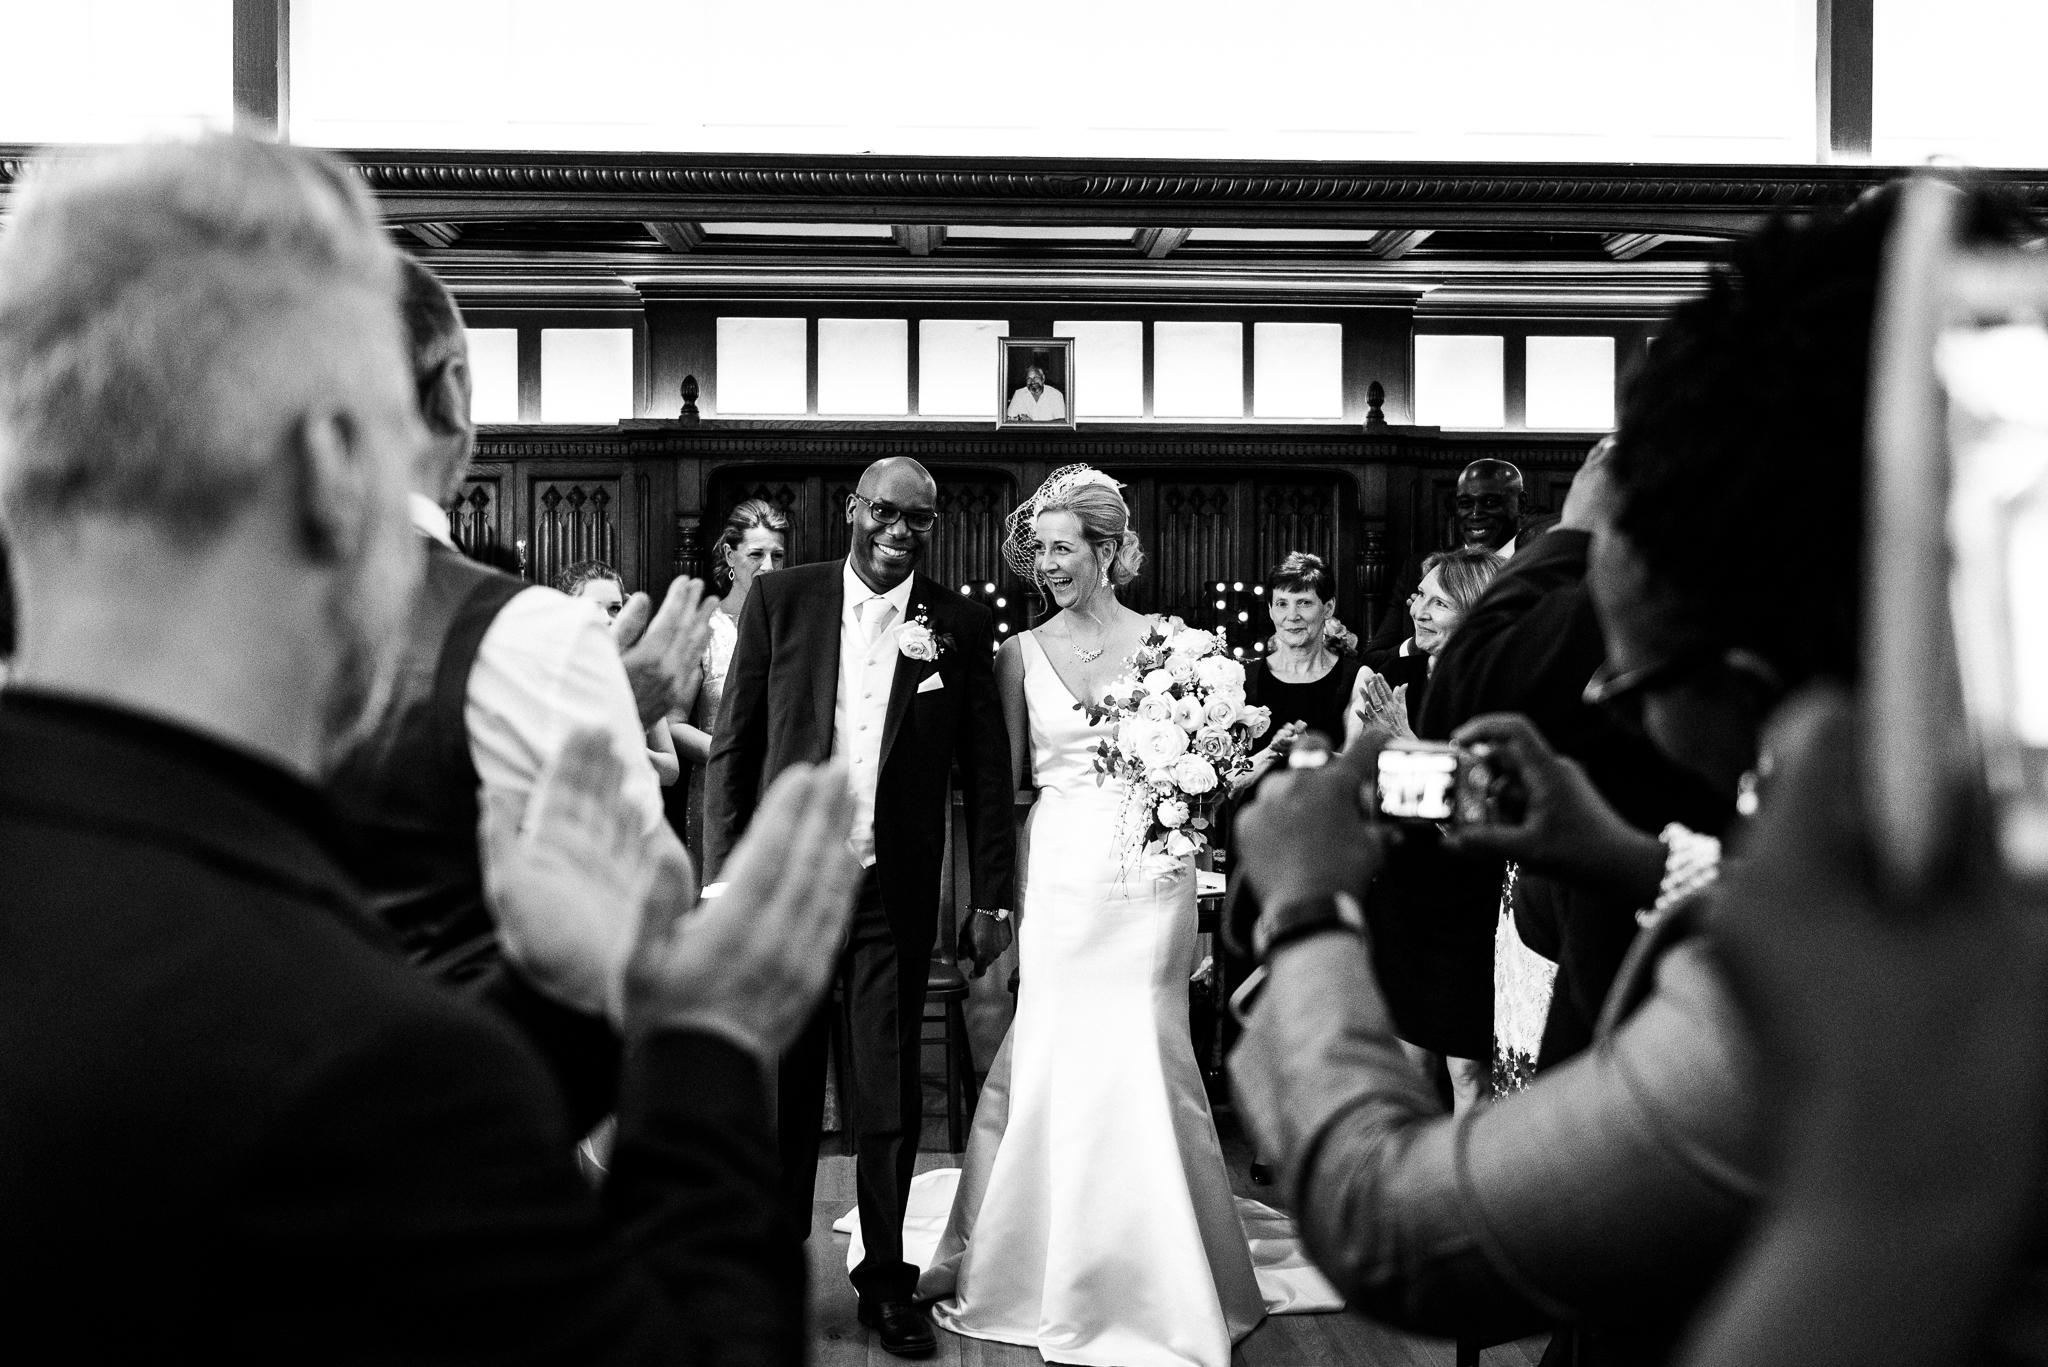 Stylish Easter Wedding at Pendrell Hall Country House Wedding Venue Staffordshire - Jenny Harper-30.jpg